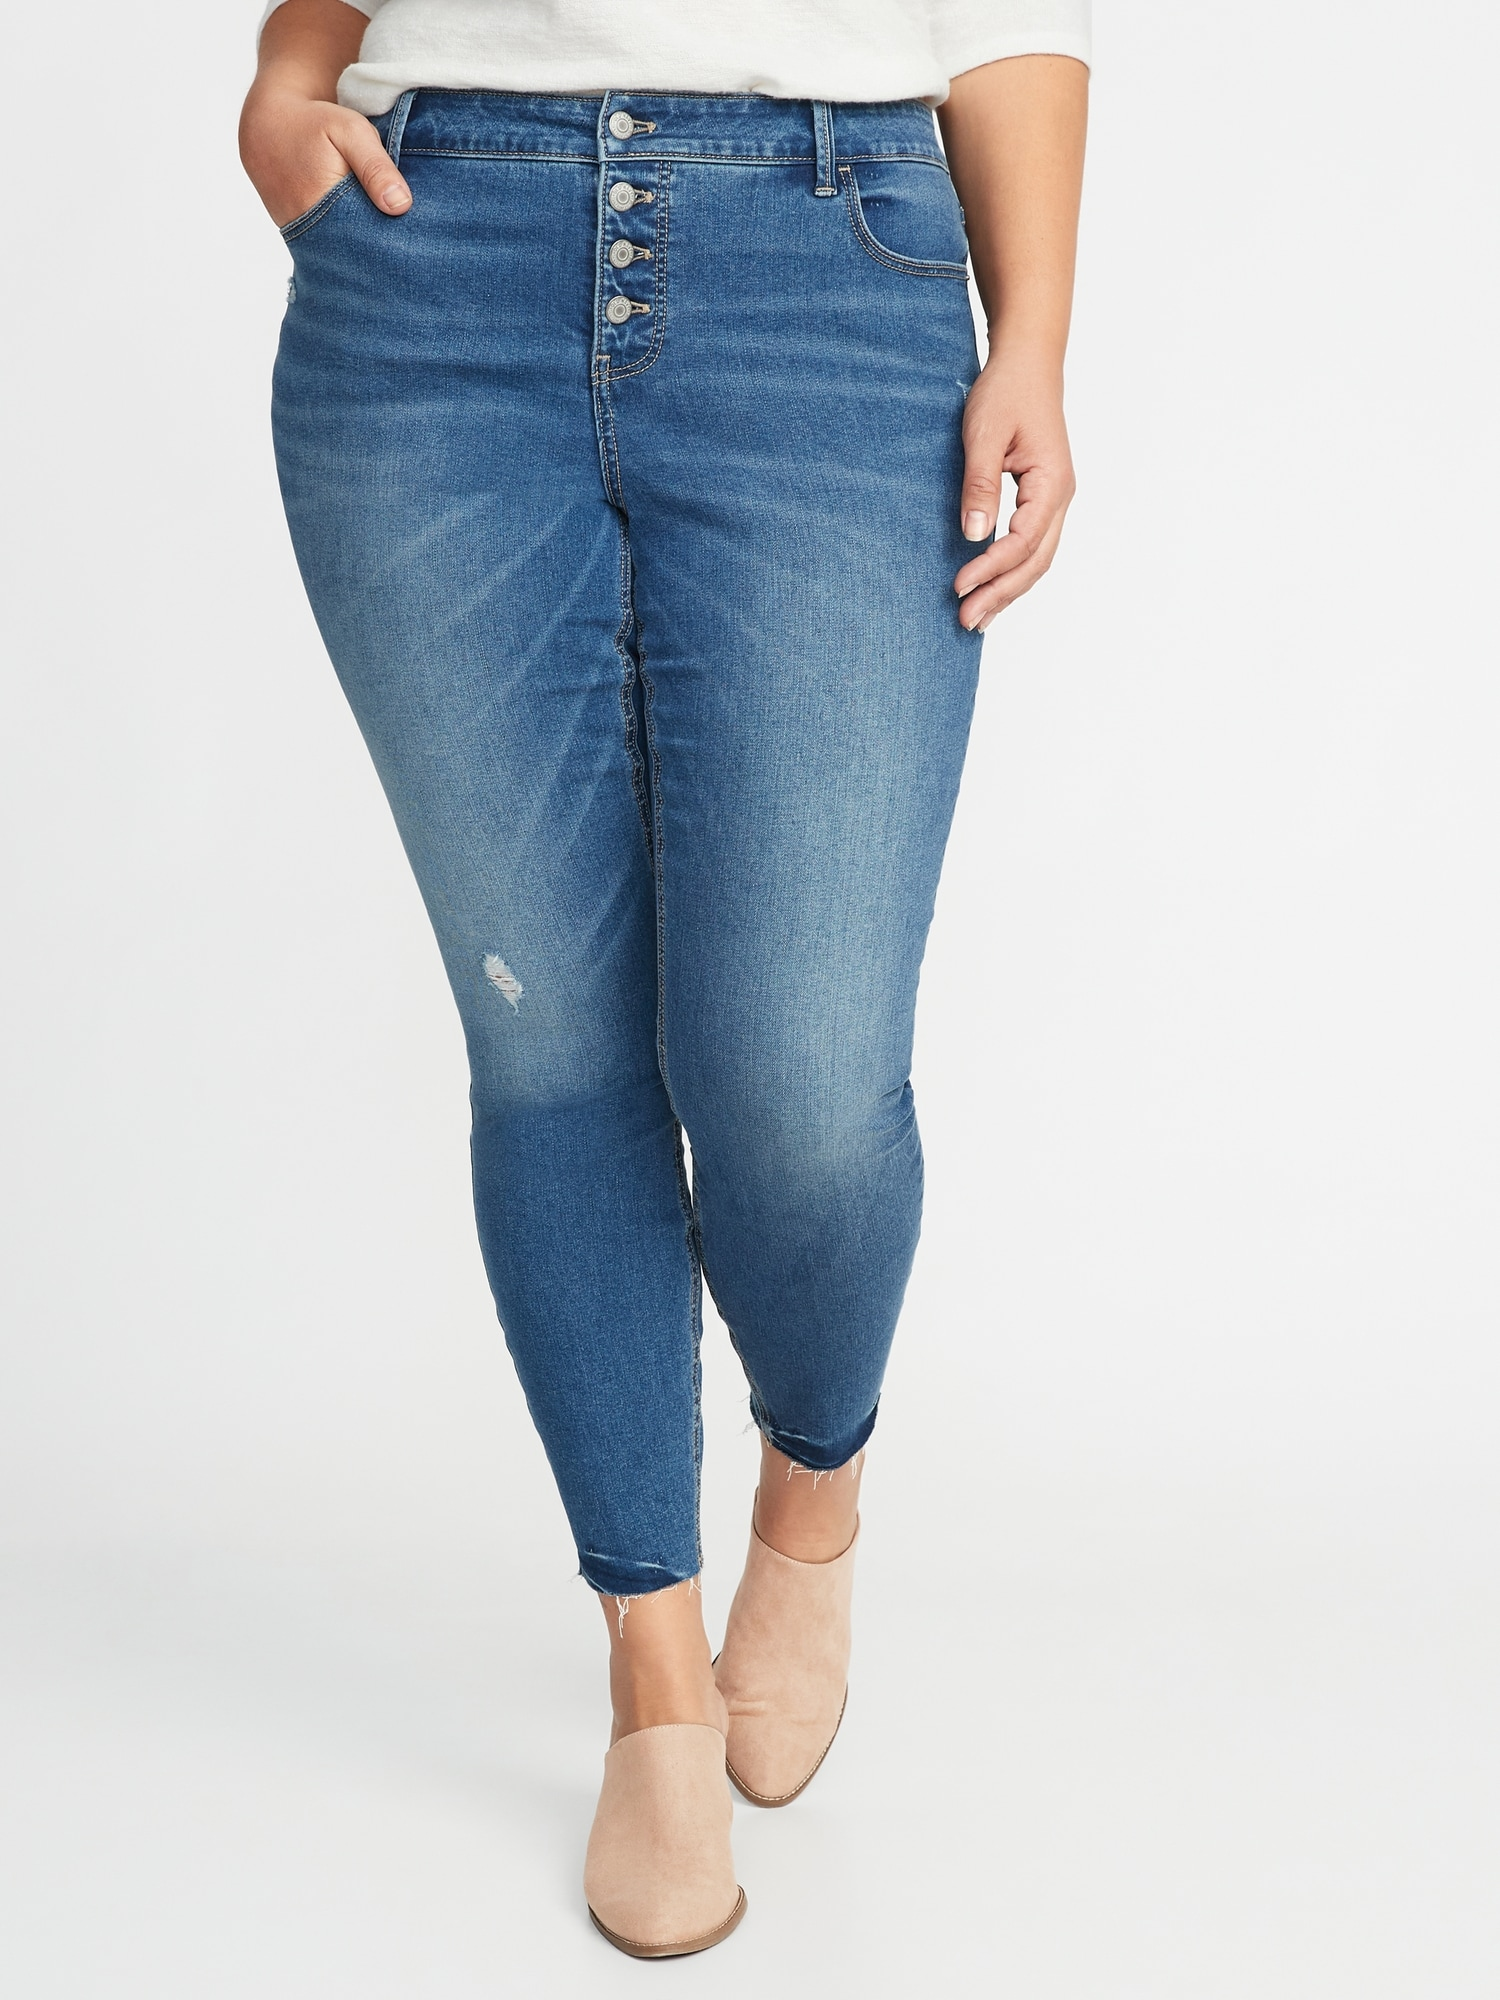 f1411b17d82 High-Rise Secret-Slim Plus-Size Button-Fly Rockstar Jeans